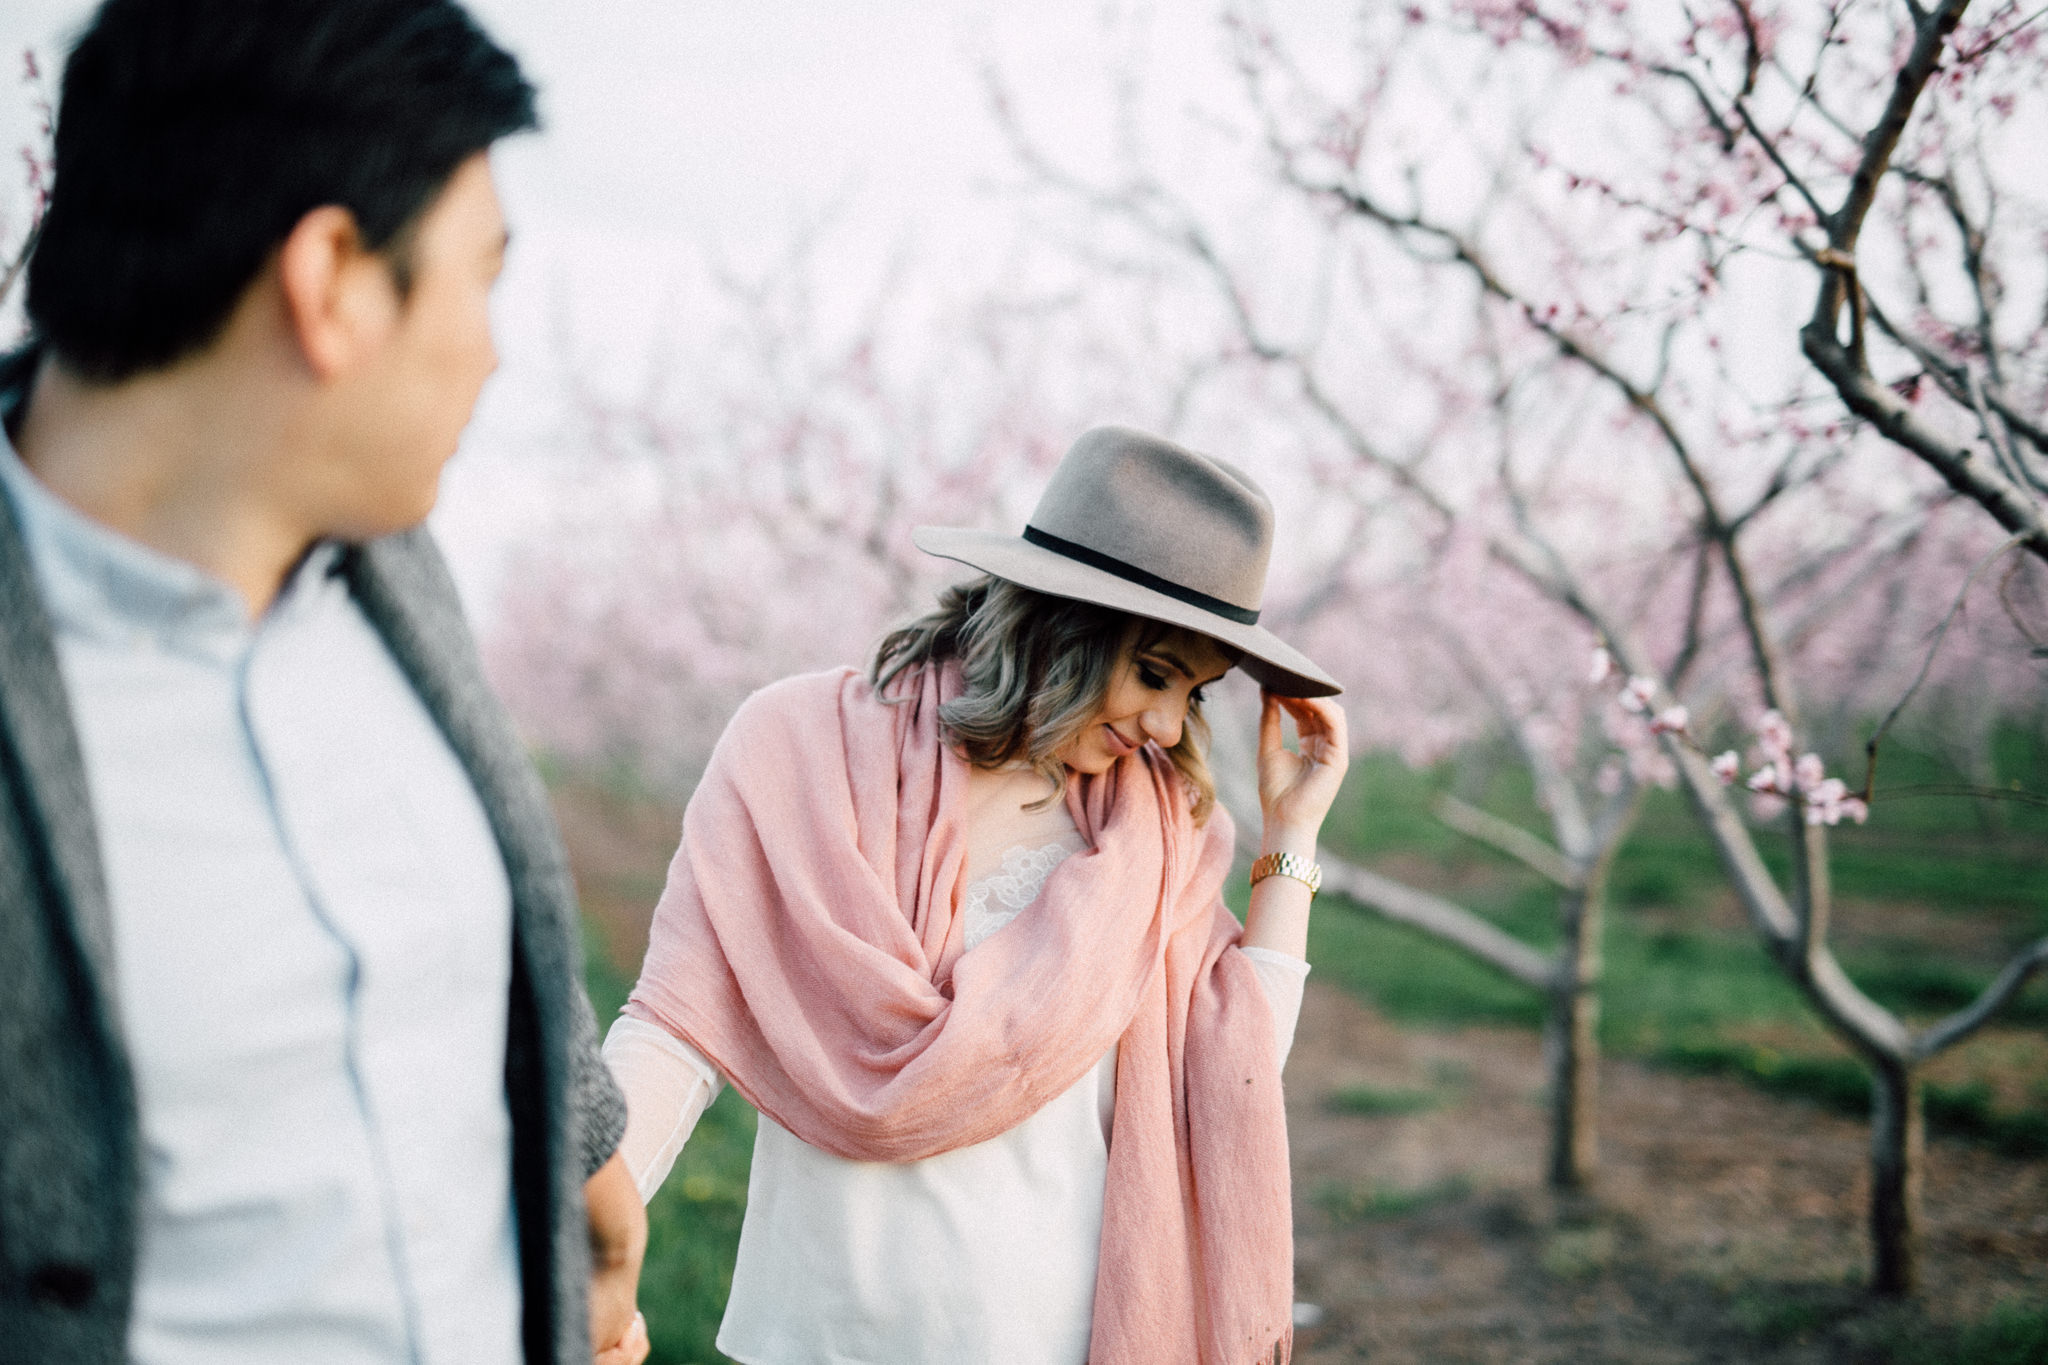 Niagara-Portrait-Session-Niagara-On-The-Lake-Cherry-Blossoms-photography-by-Simply-Lace-Photography-035.JPG